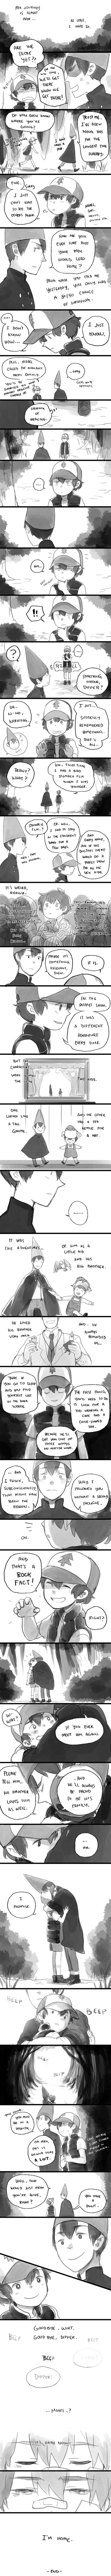 Over the Garden Wall Au - Garden Falls Chapter 10 宇宙艦隊RAMBO